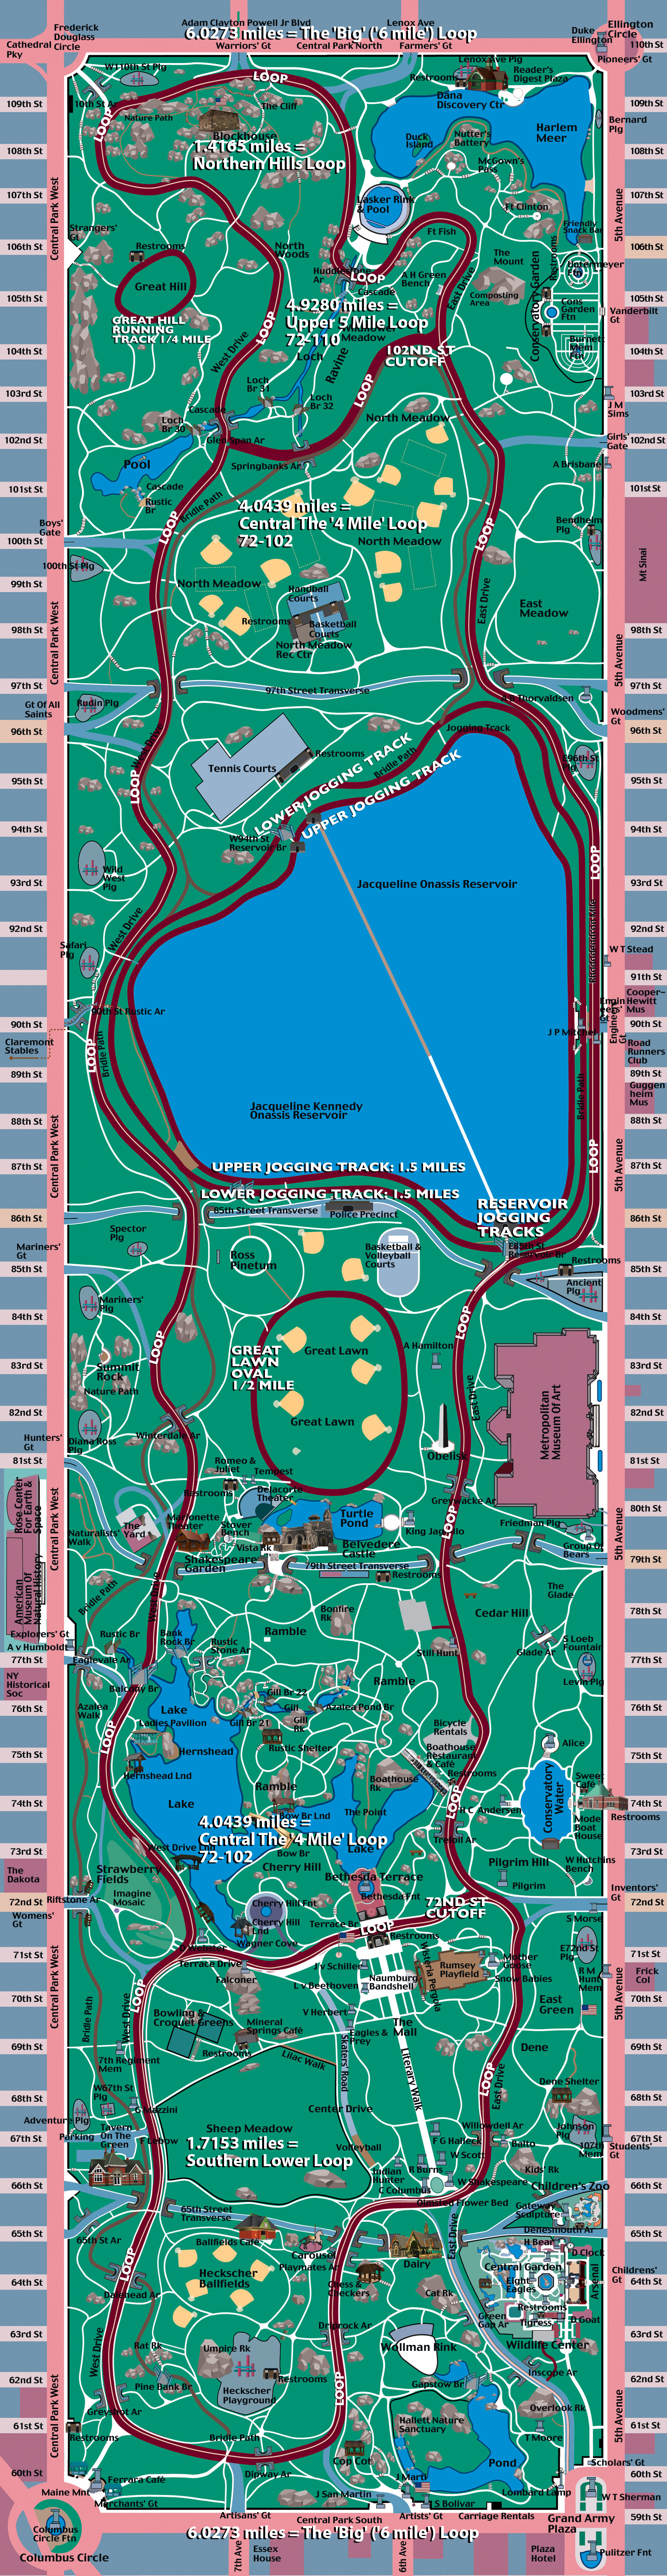 MIF Central Park Illustrated Runners Map